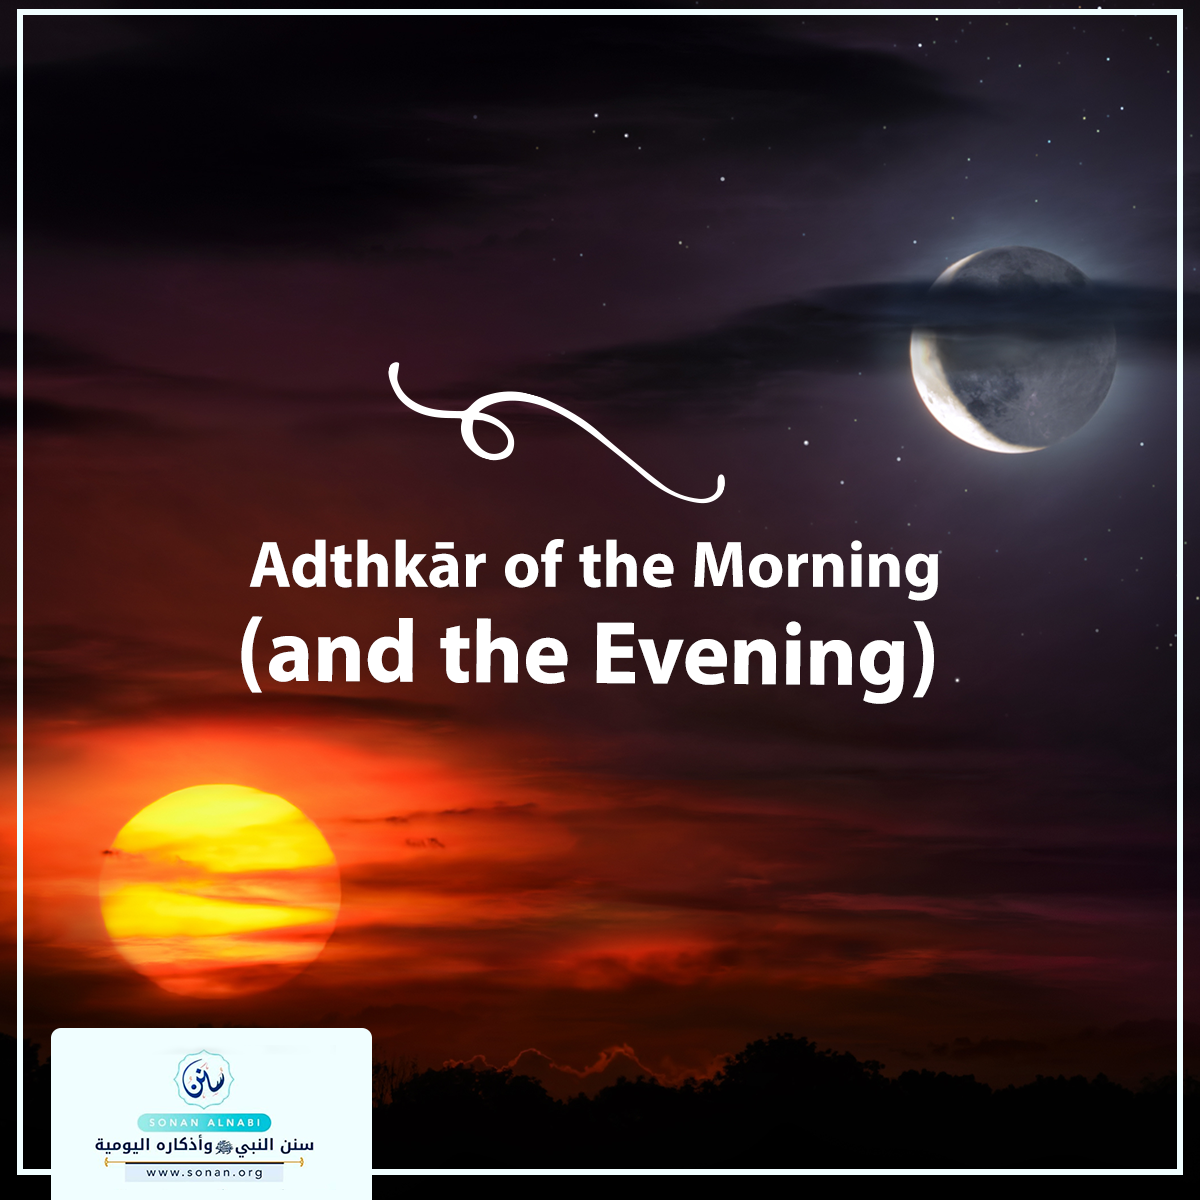 Adthkār of the Morning (and the Evening):